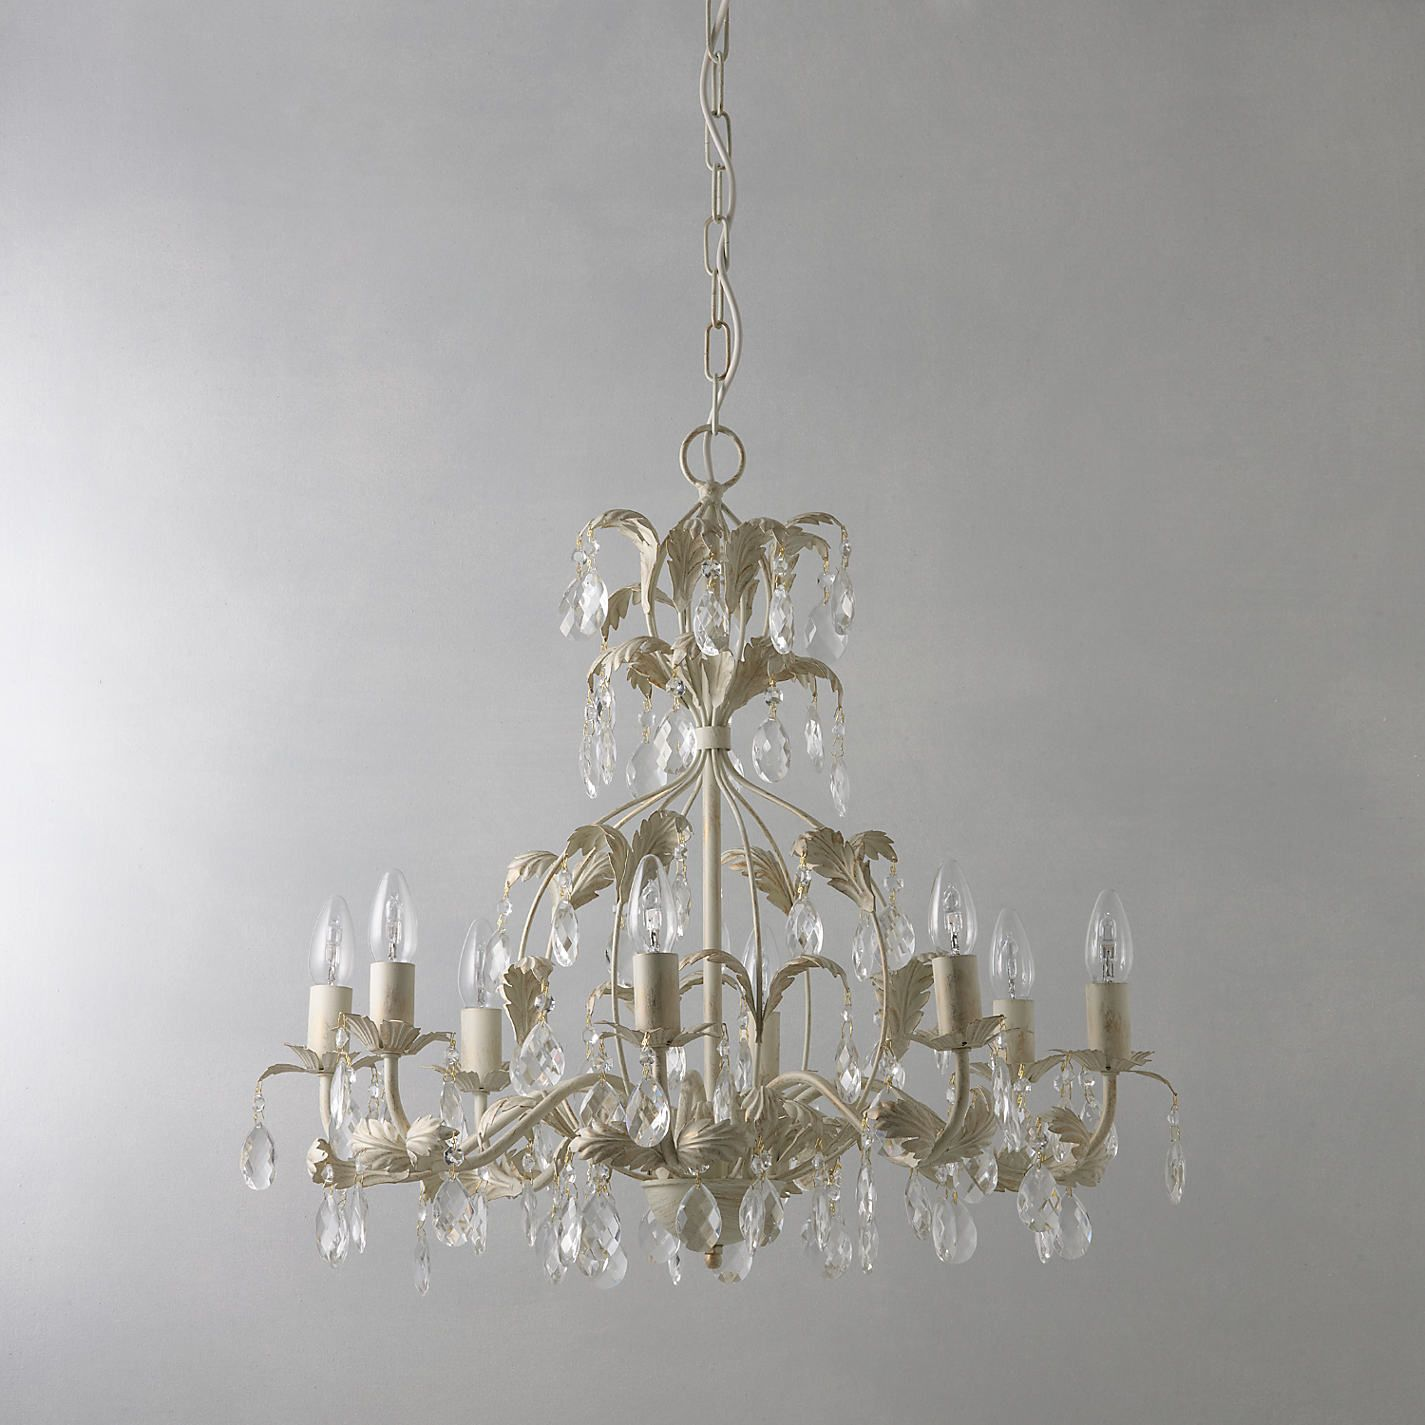 Httpjohnlewisjohn lewis annabella chandelier 5 arm httpjohnlewisjohn lewis annabella aloadofball Image collections